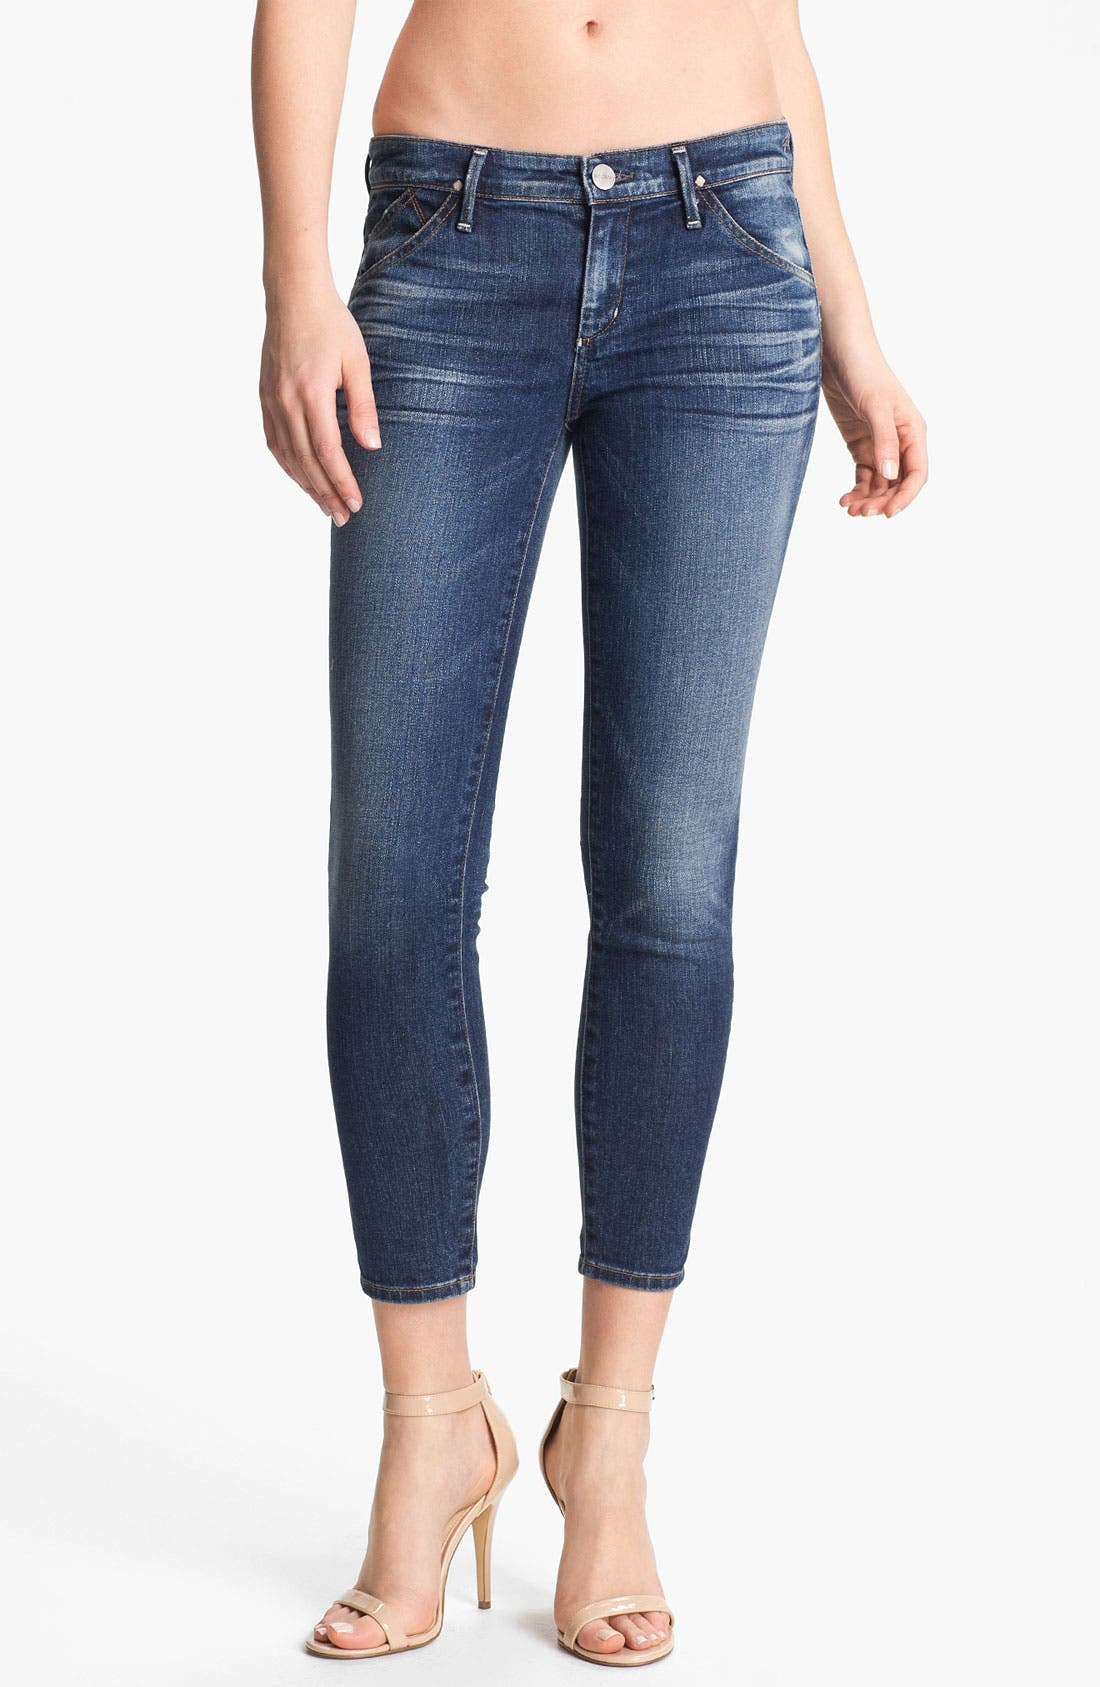 Alternate Image 1 Selected - Goldsign 'Gracie' Crop Skinny Stretch Jeans (Glam)